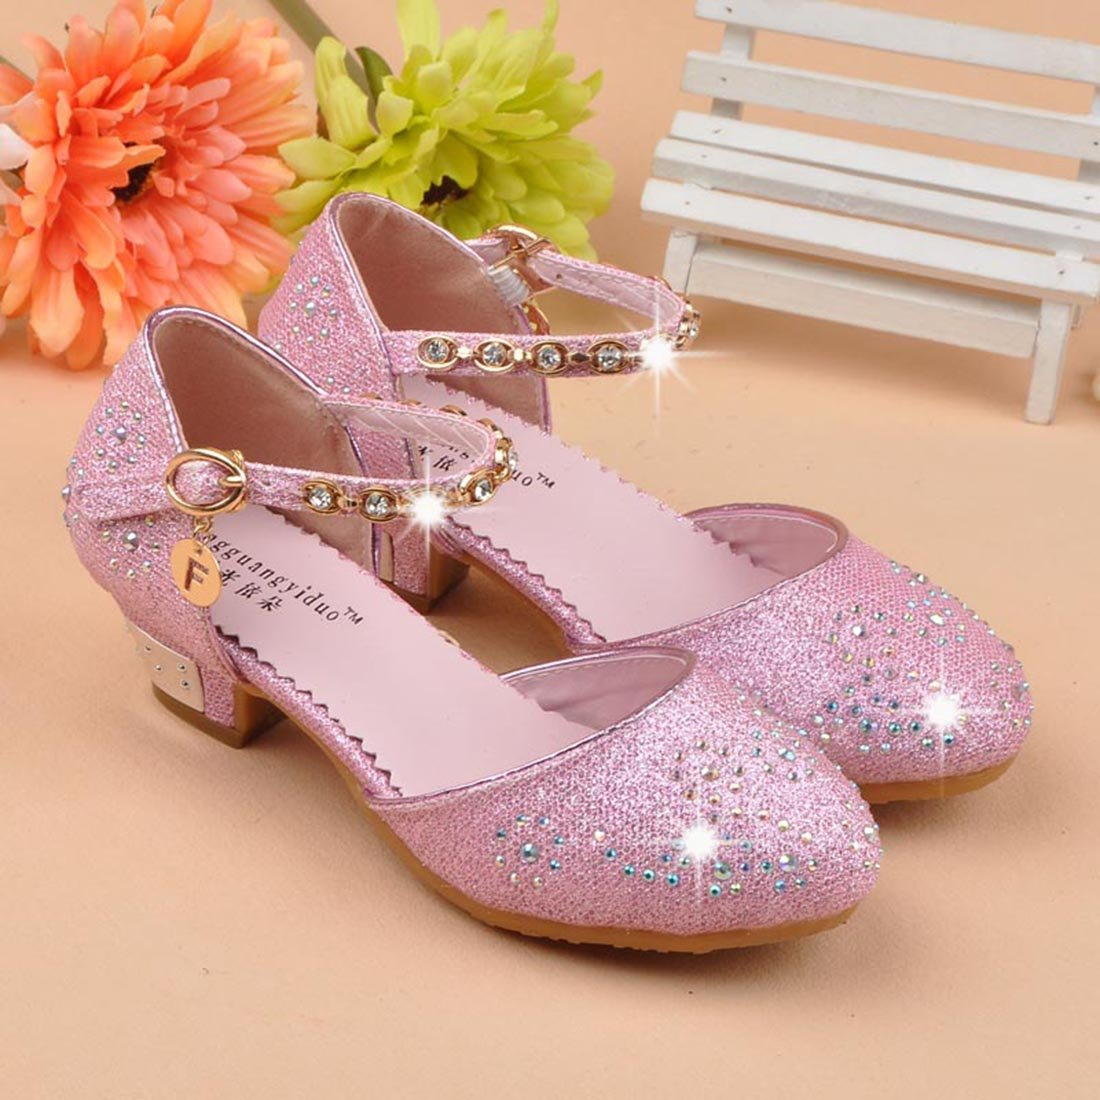 454997cb9536 O N Girls Kids Childrens Low Heel Party Wedding Mary Jane Sandals School  Shoes larger image